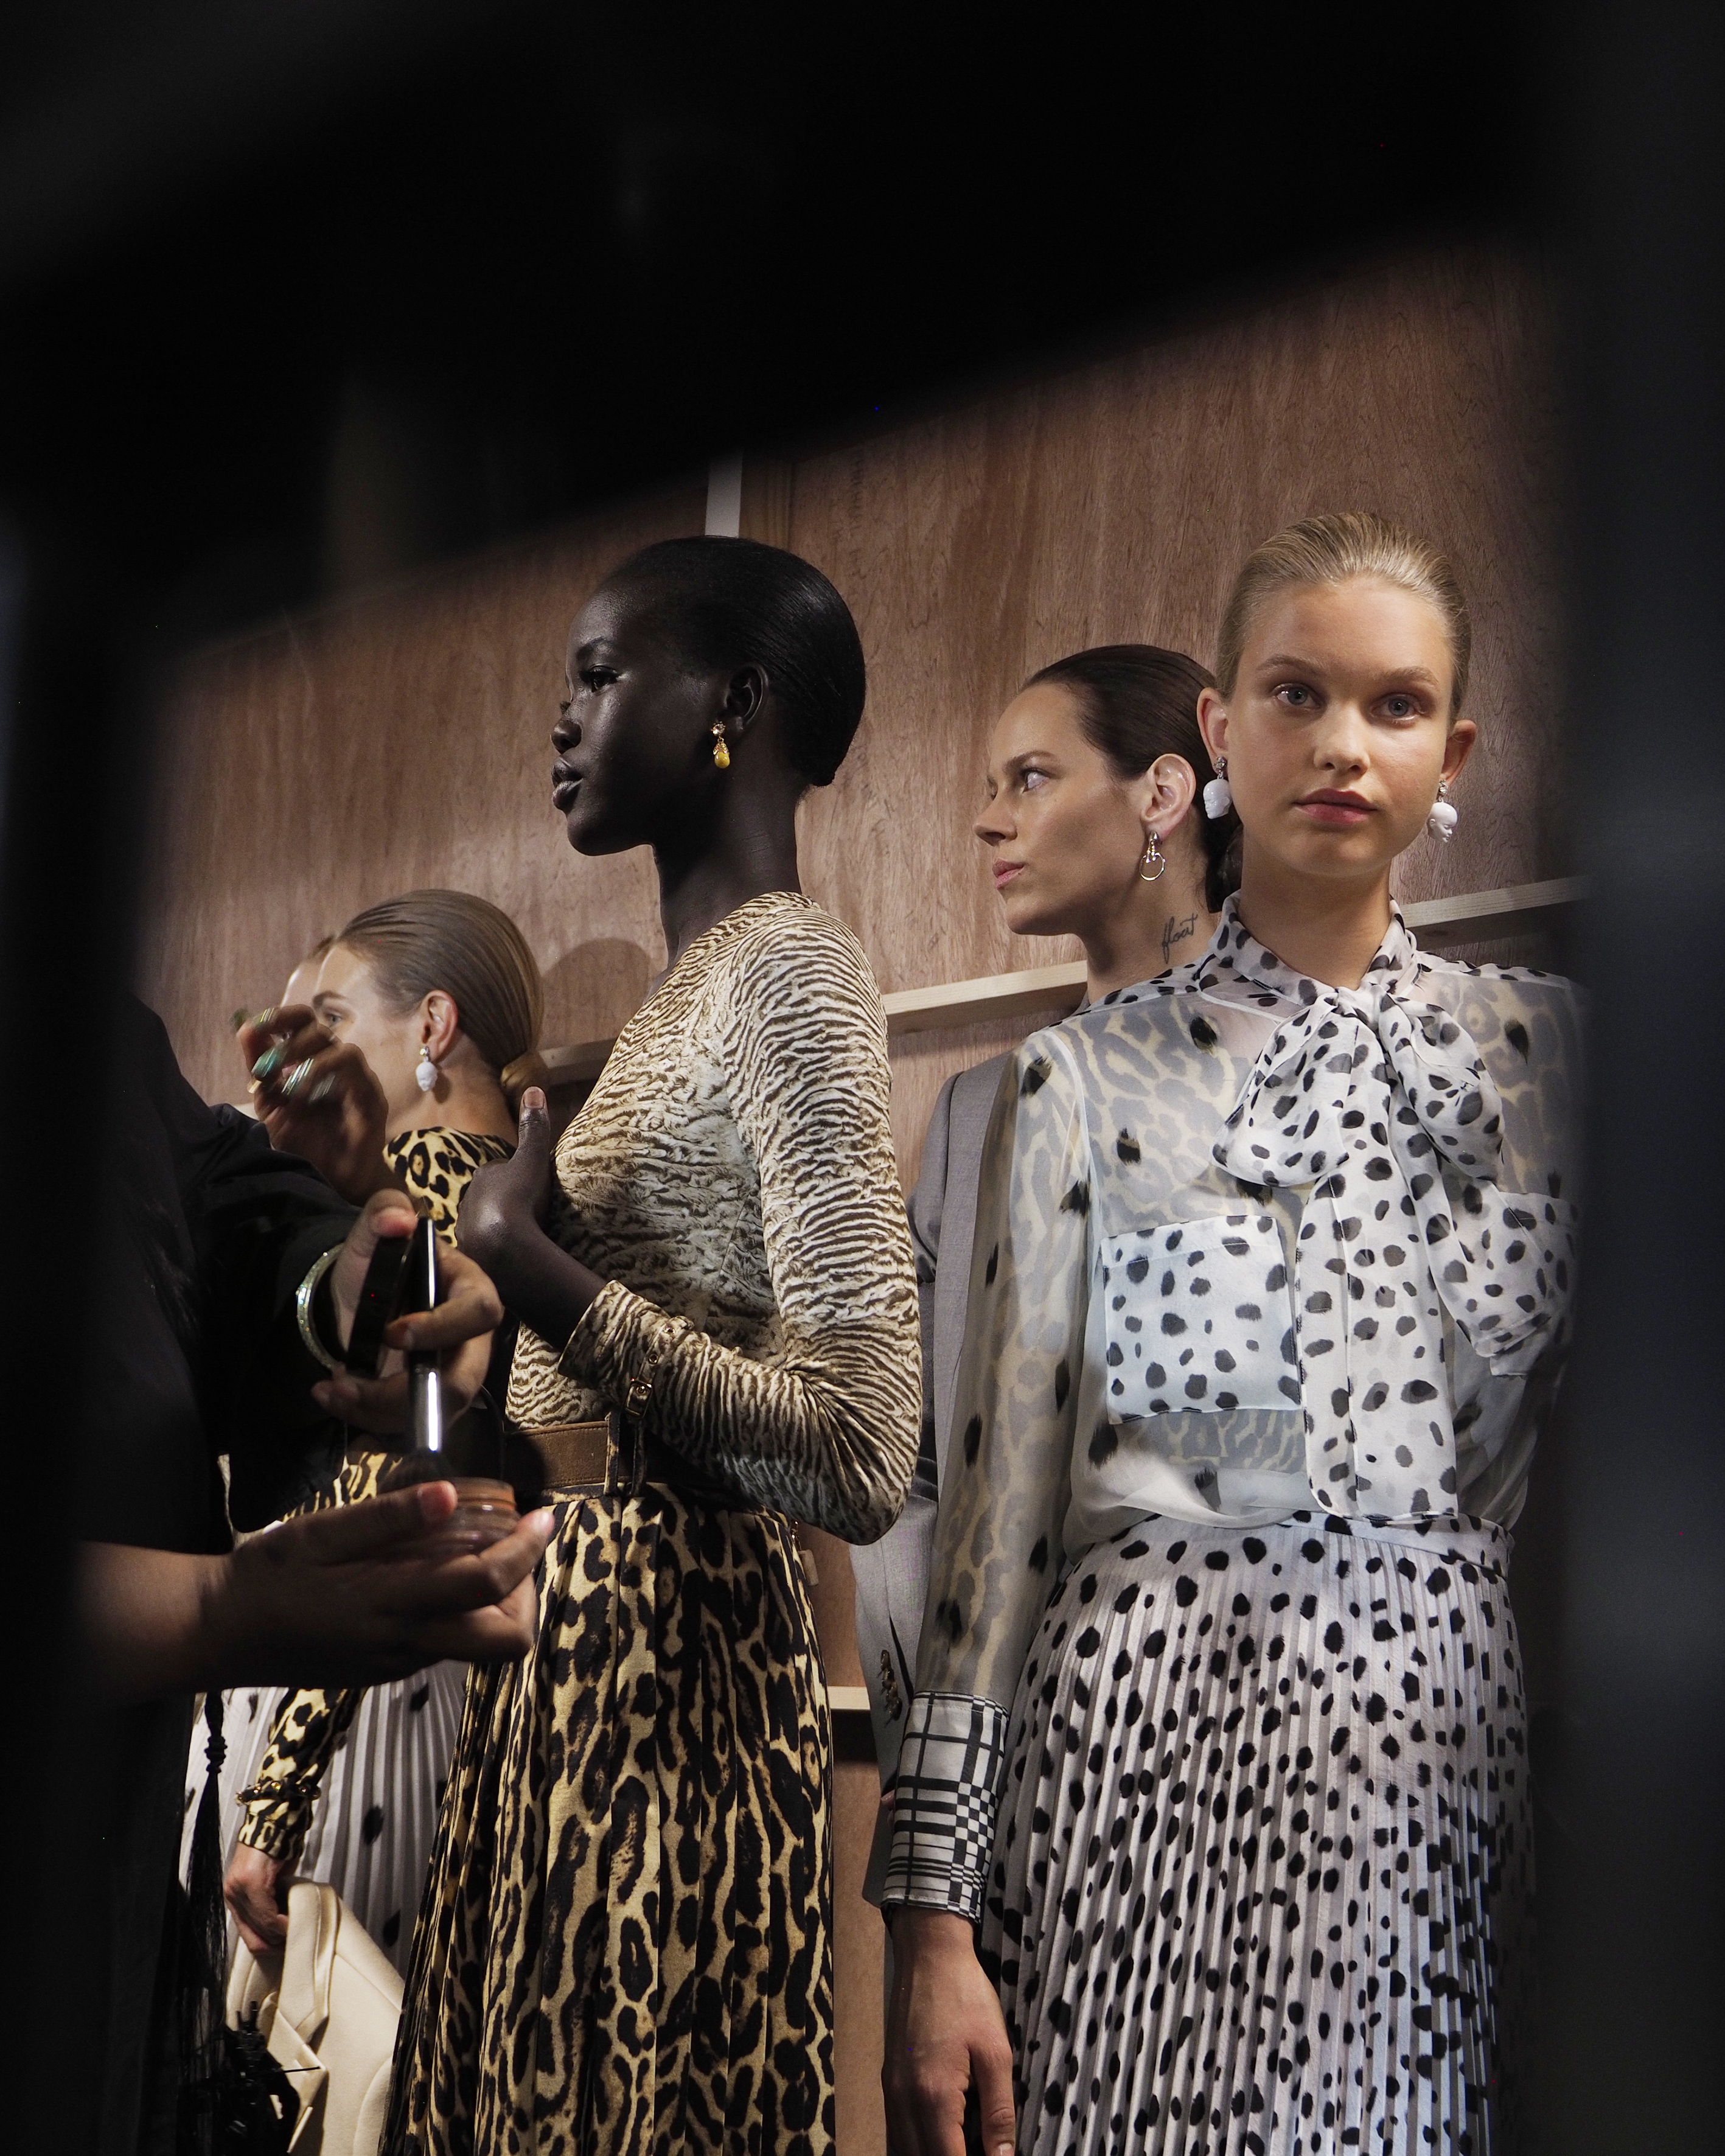 An abundance of animal prints were observed across both menswear and womenswear